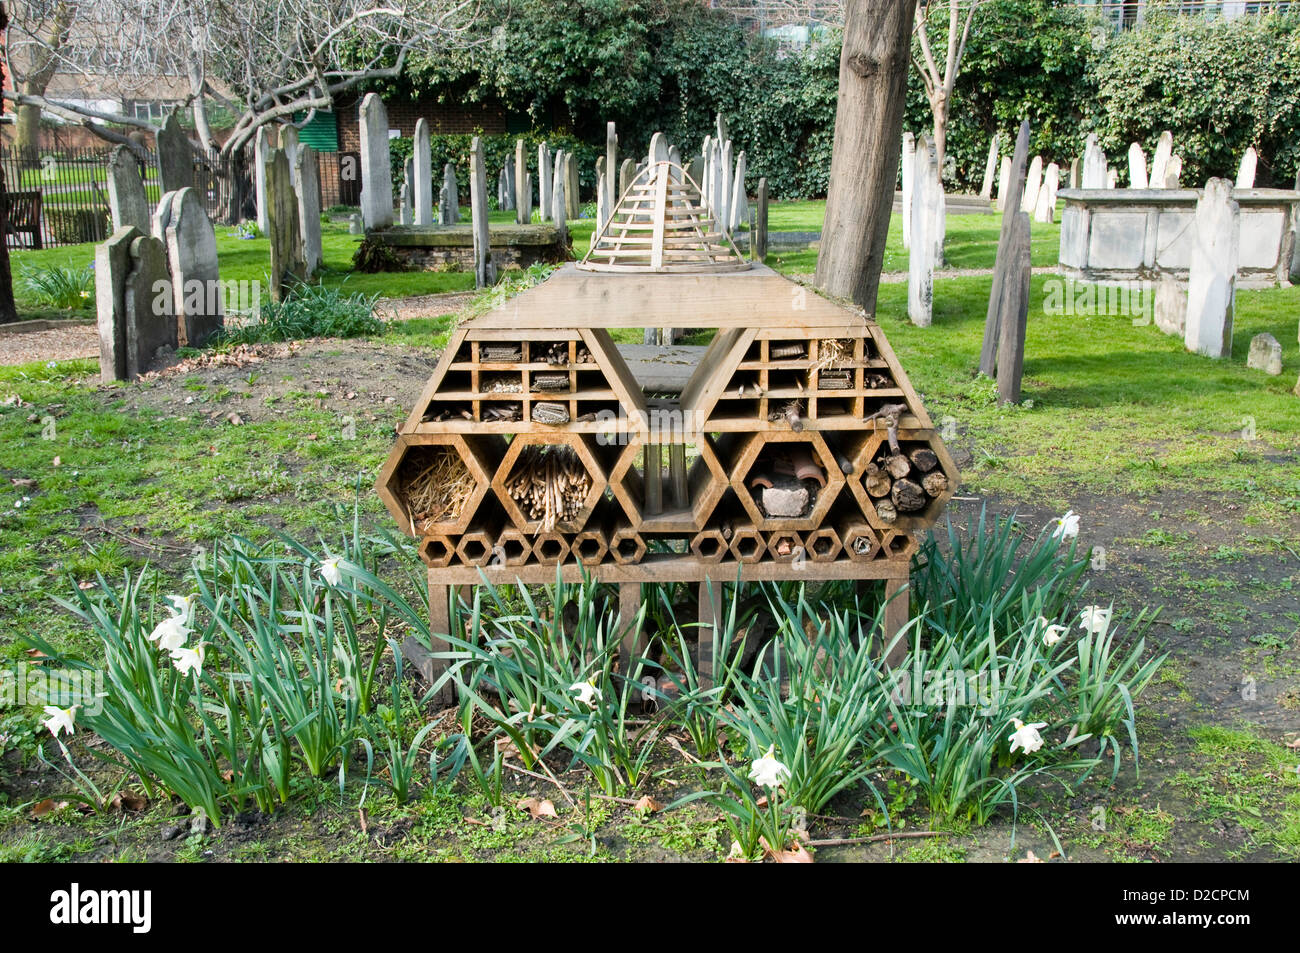 invertebrate Bug Hotel or Insect House  situated amongst gravestones, Bunhill Fields Burial Ground Stock Photo